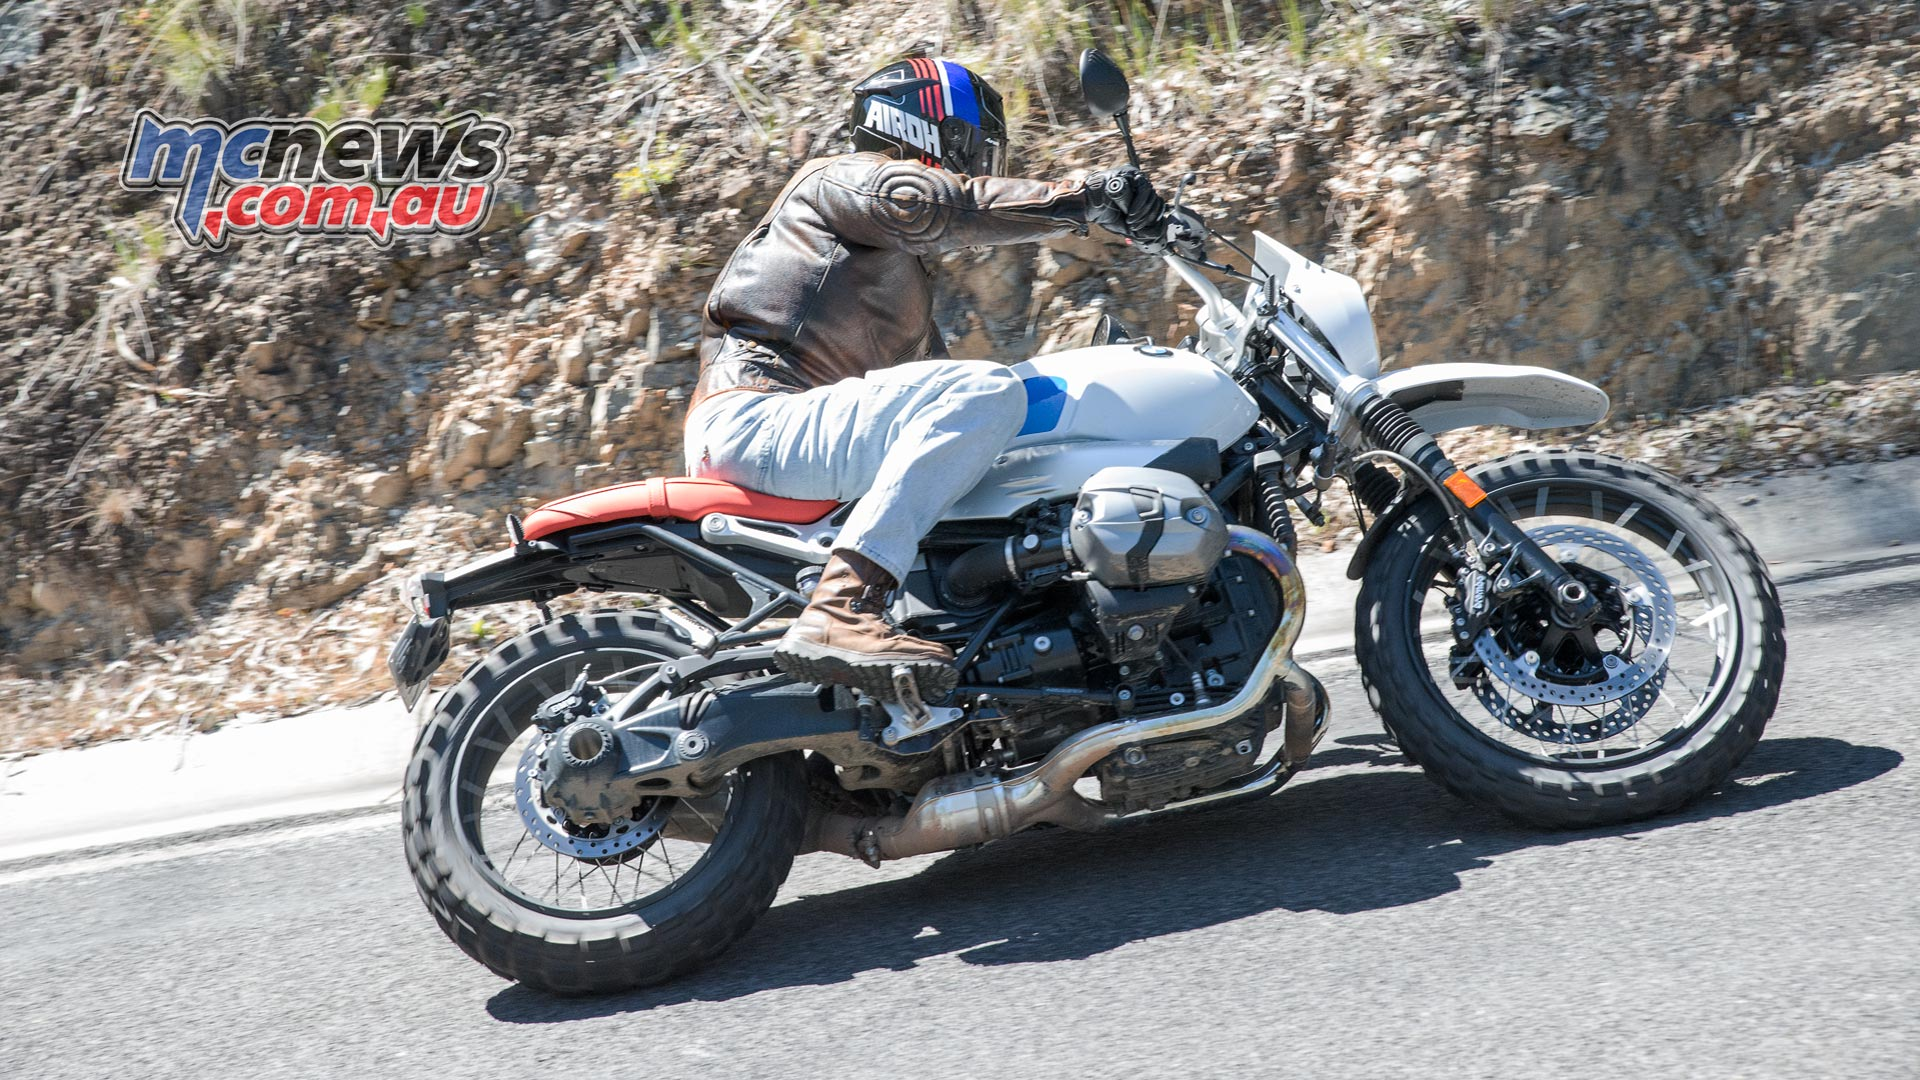 BMW R nineT Urban G/S Review | Rorty Retro Riot | MCNews com au